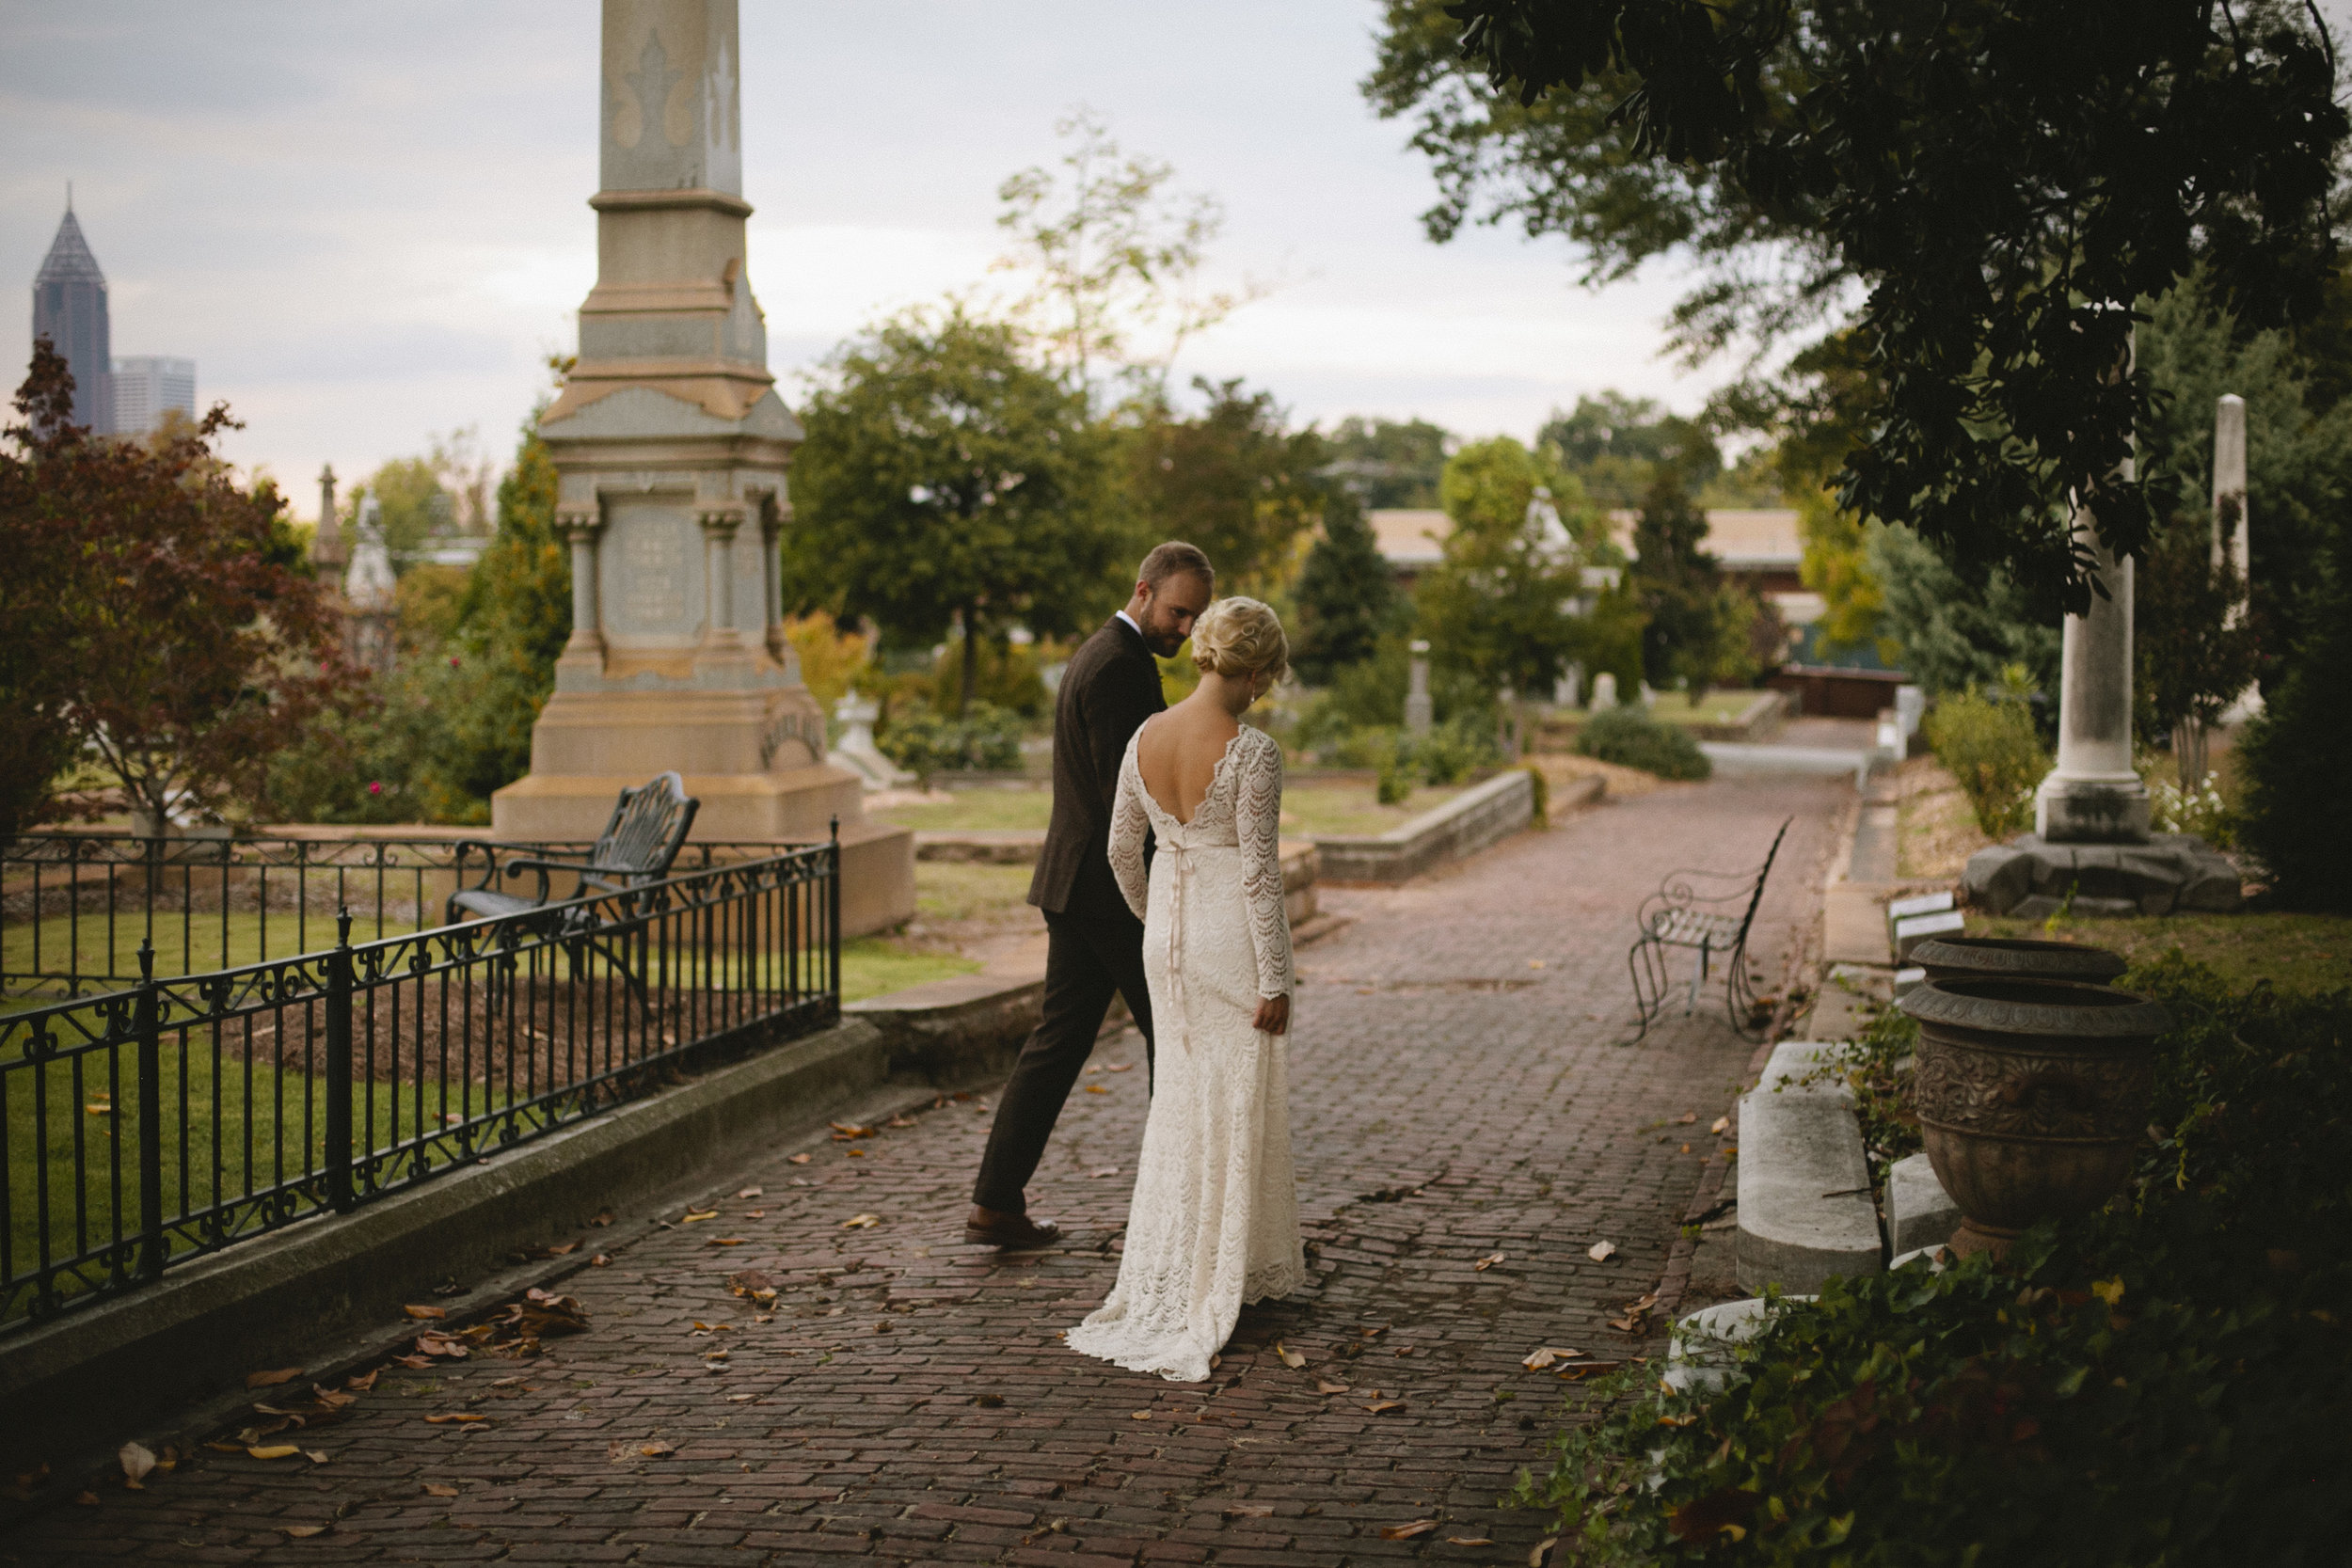 Wedding Photographer Atlanta Elopement Travel Destination Photography Bohemian Couple